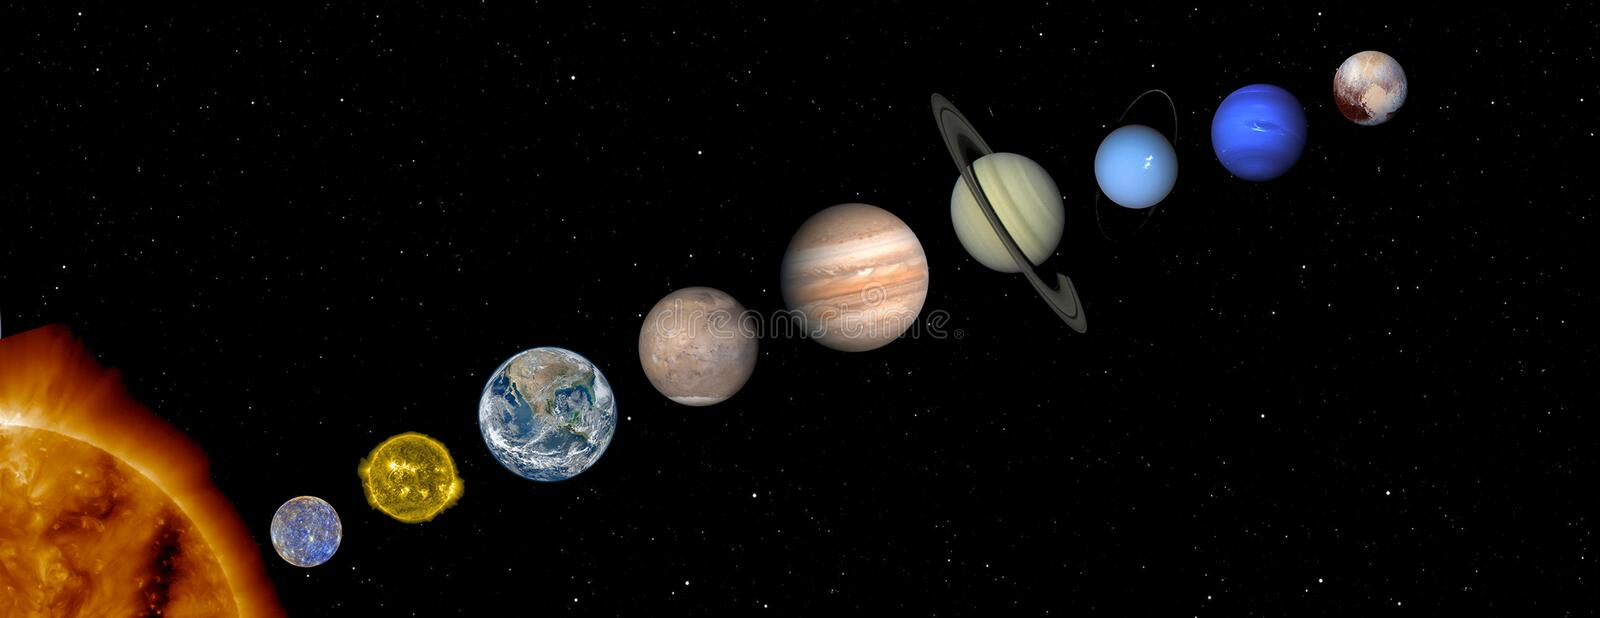 Sun and planets of the solar system royalty free stock photography